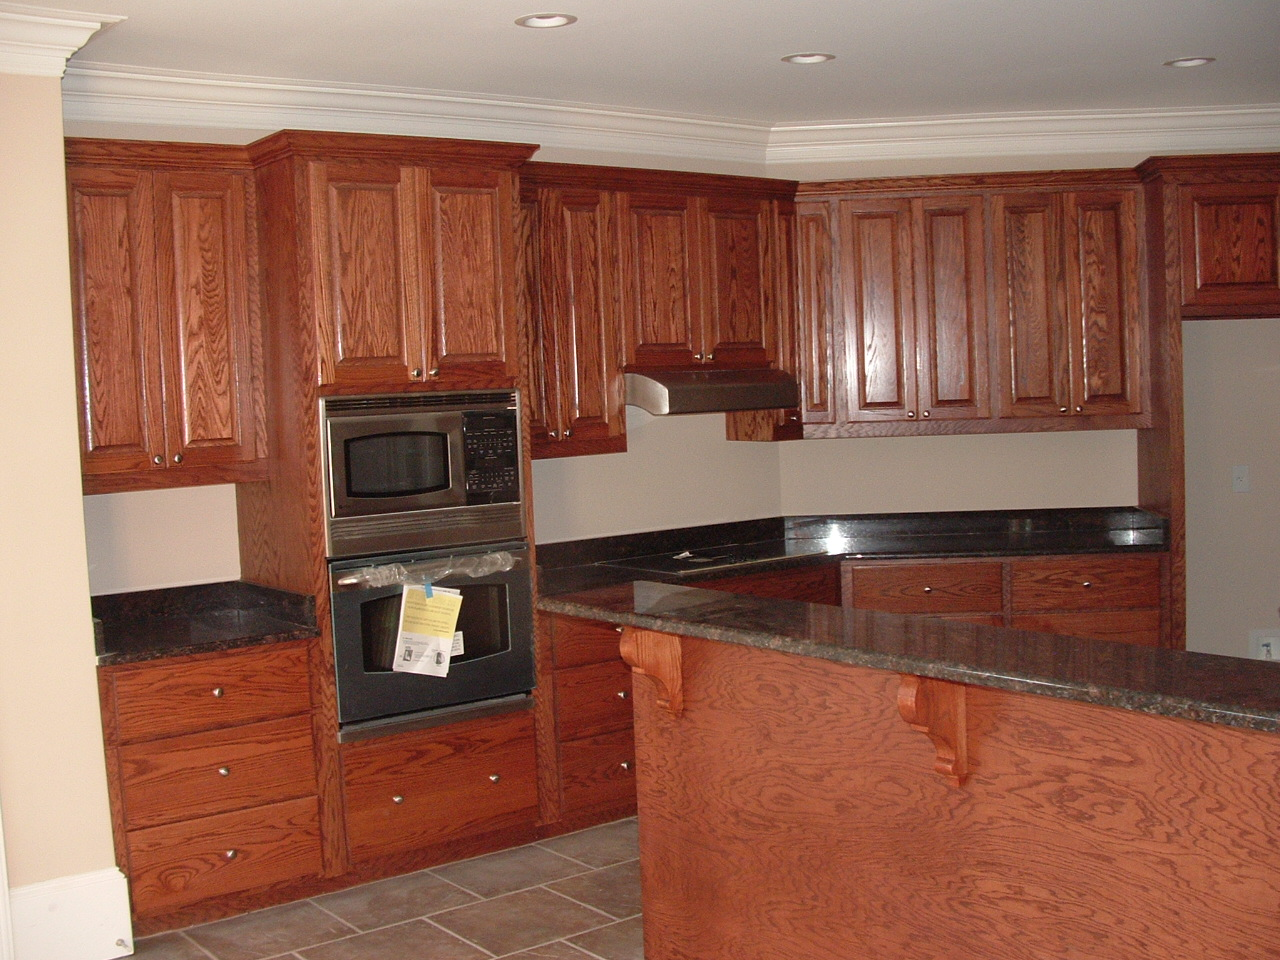 Cabinet Refacing Kit Lowes Kitchen Cabinet Doors Kitchen Cabinet Neat Lowes Kitchen